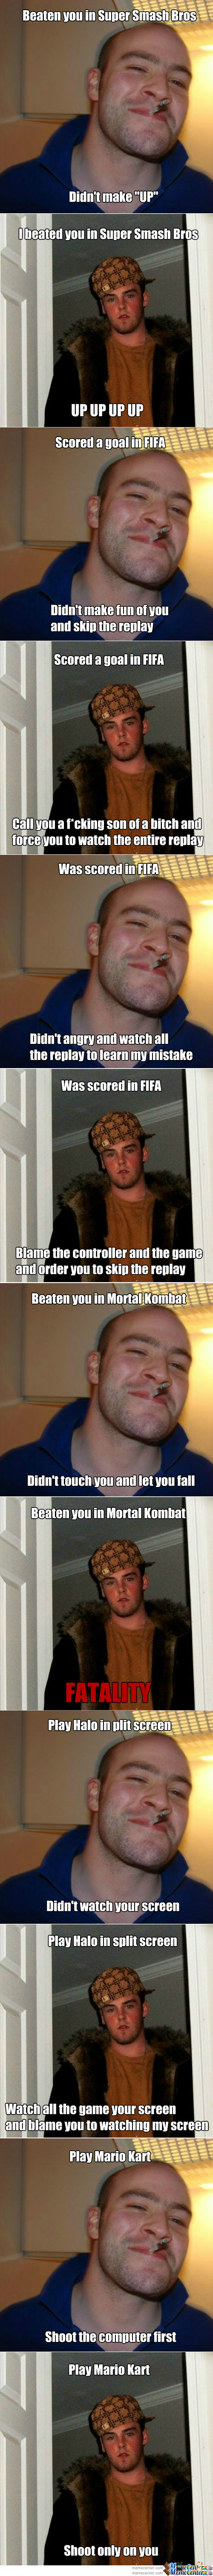 Video Game: Good Guy Greg Vs Scumbag Steve